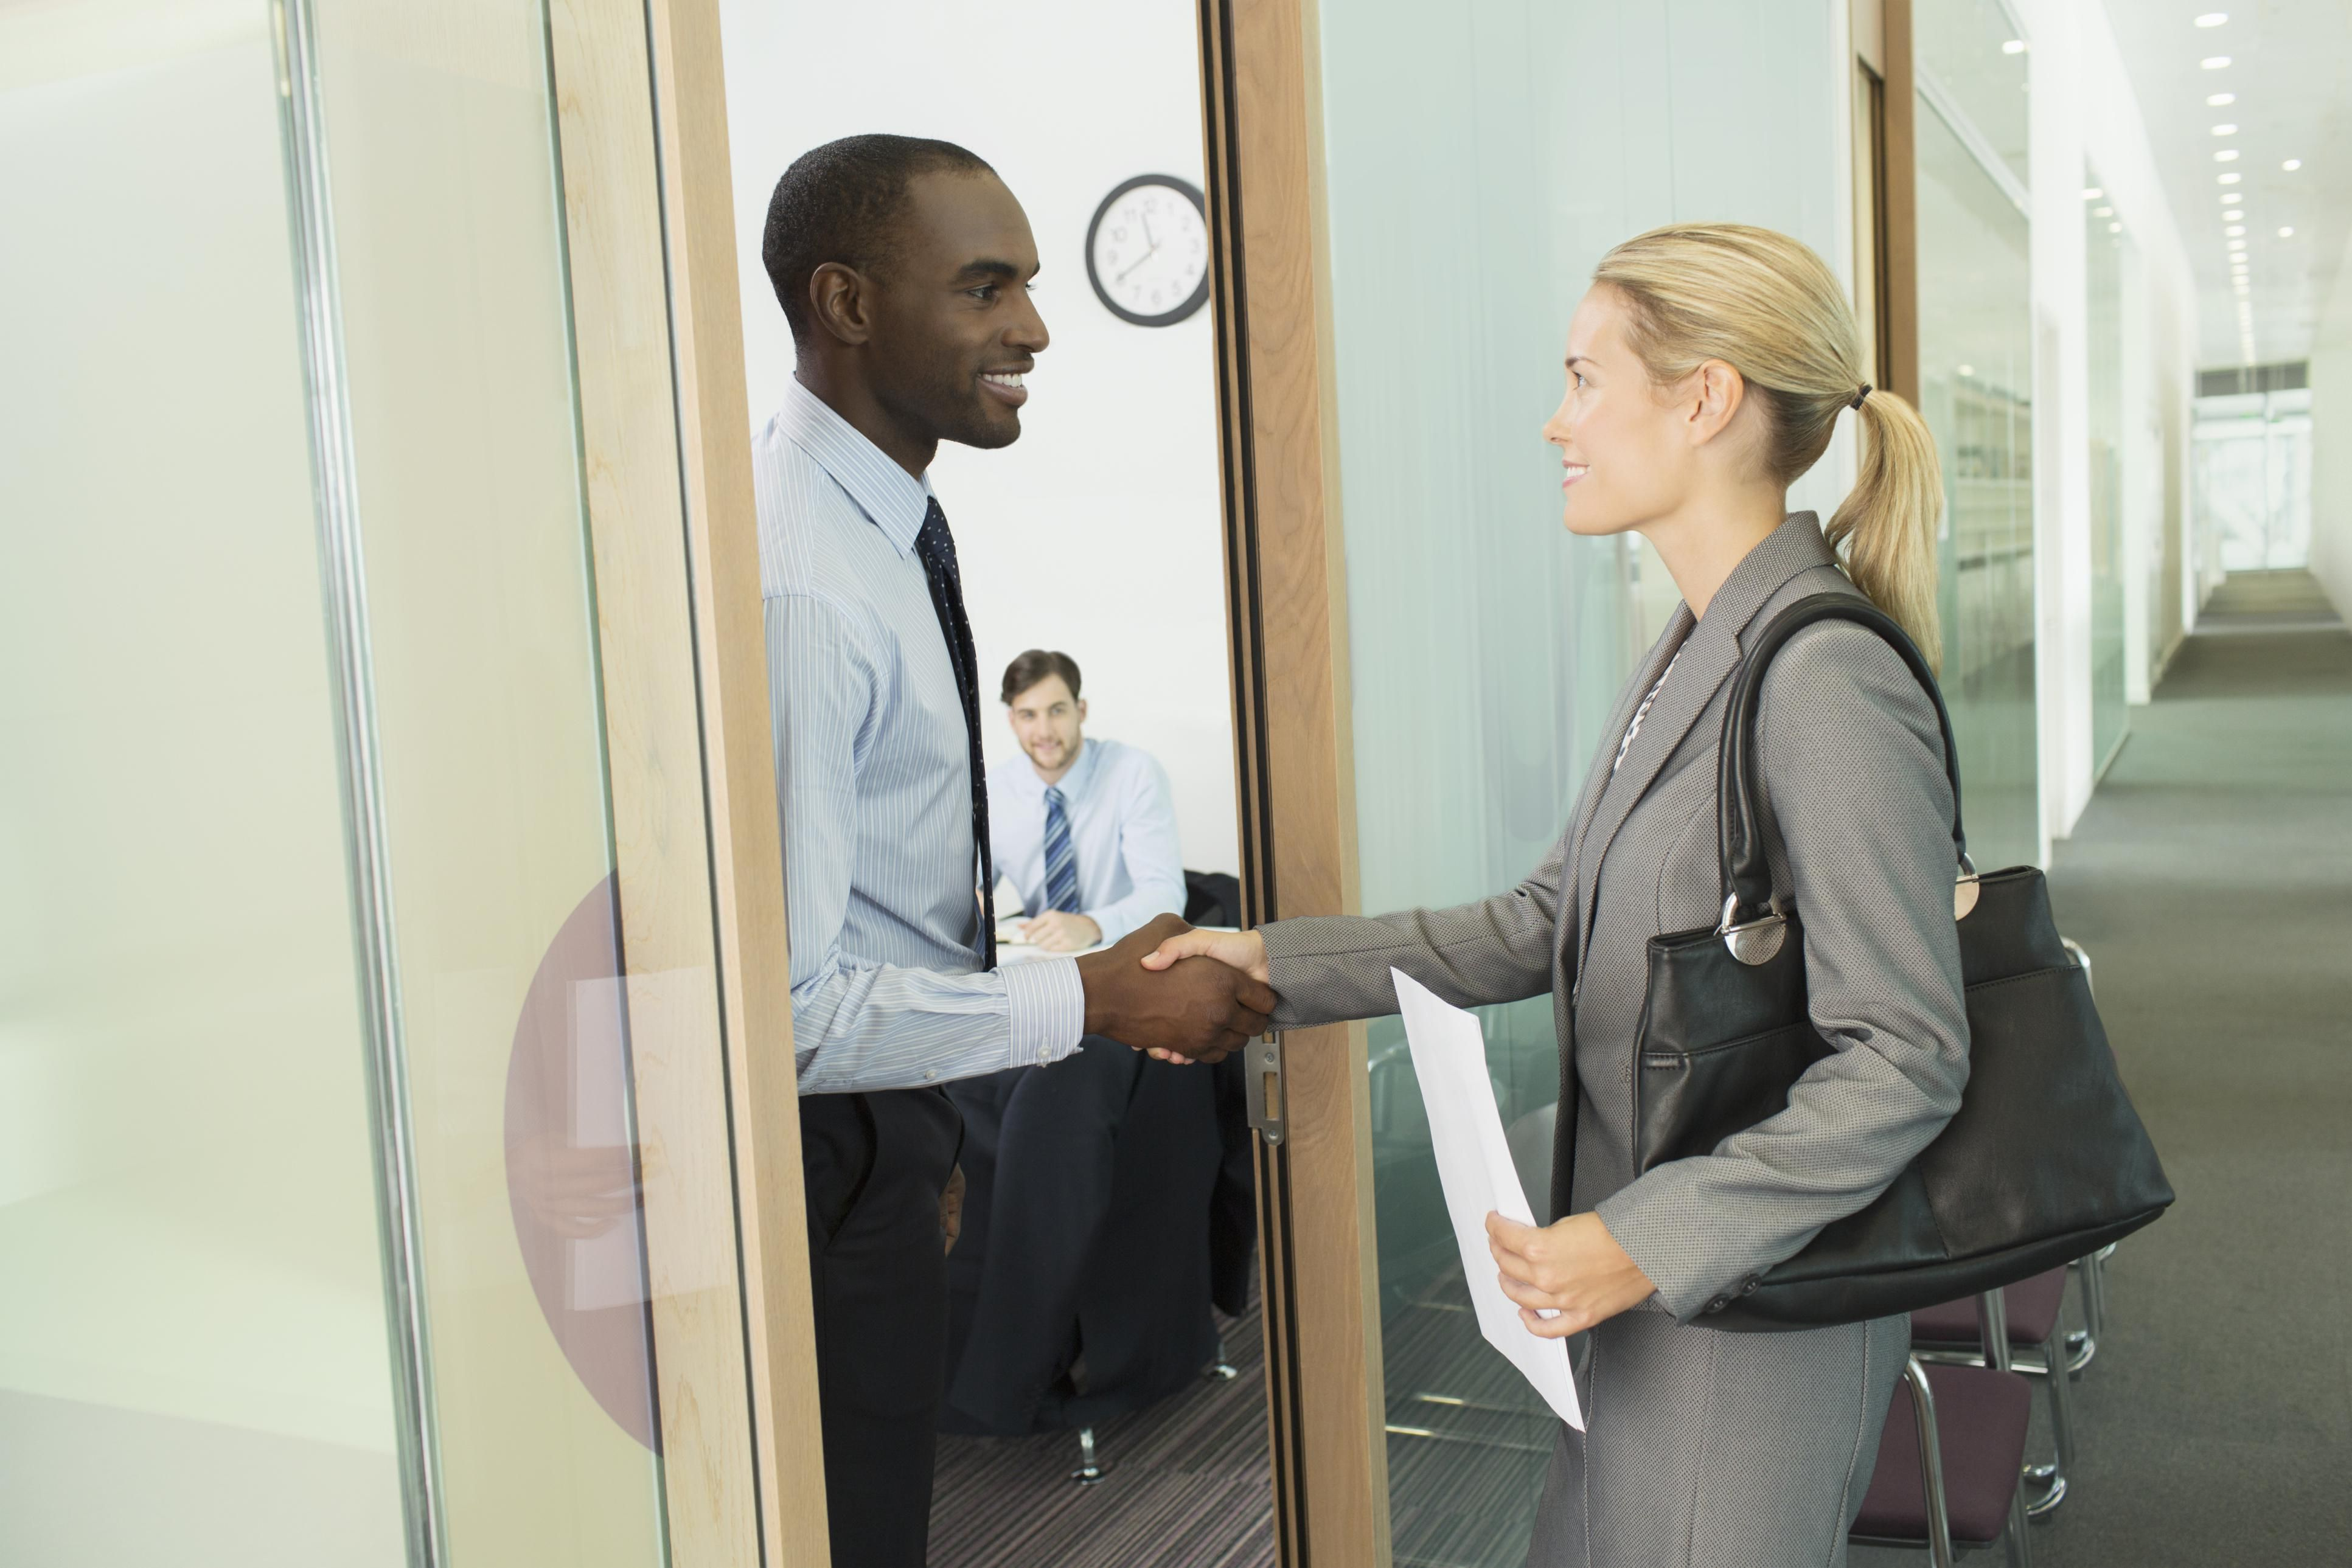 job interview questions to ask human resources